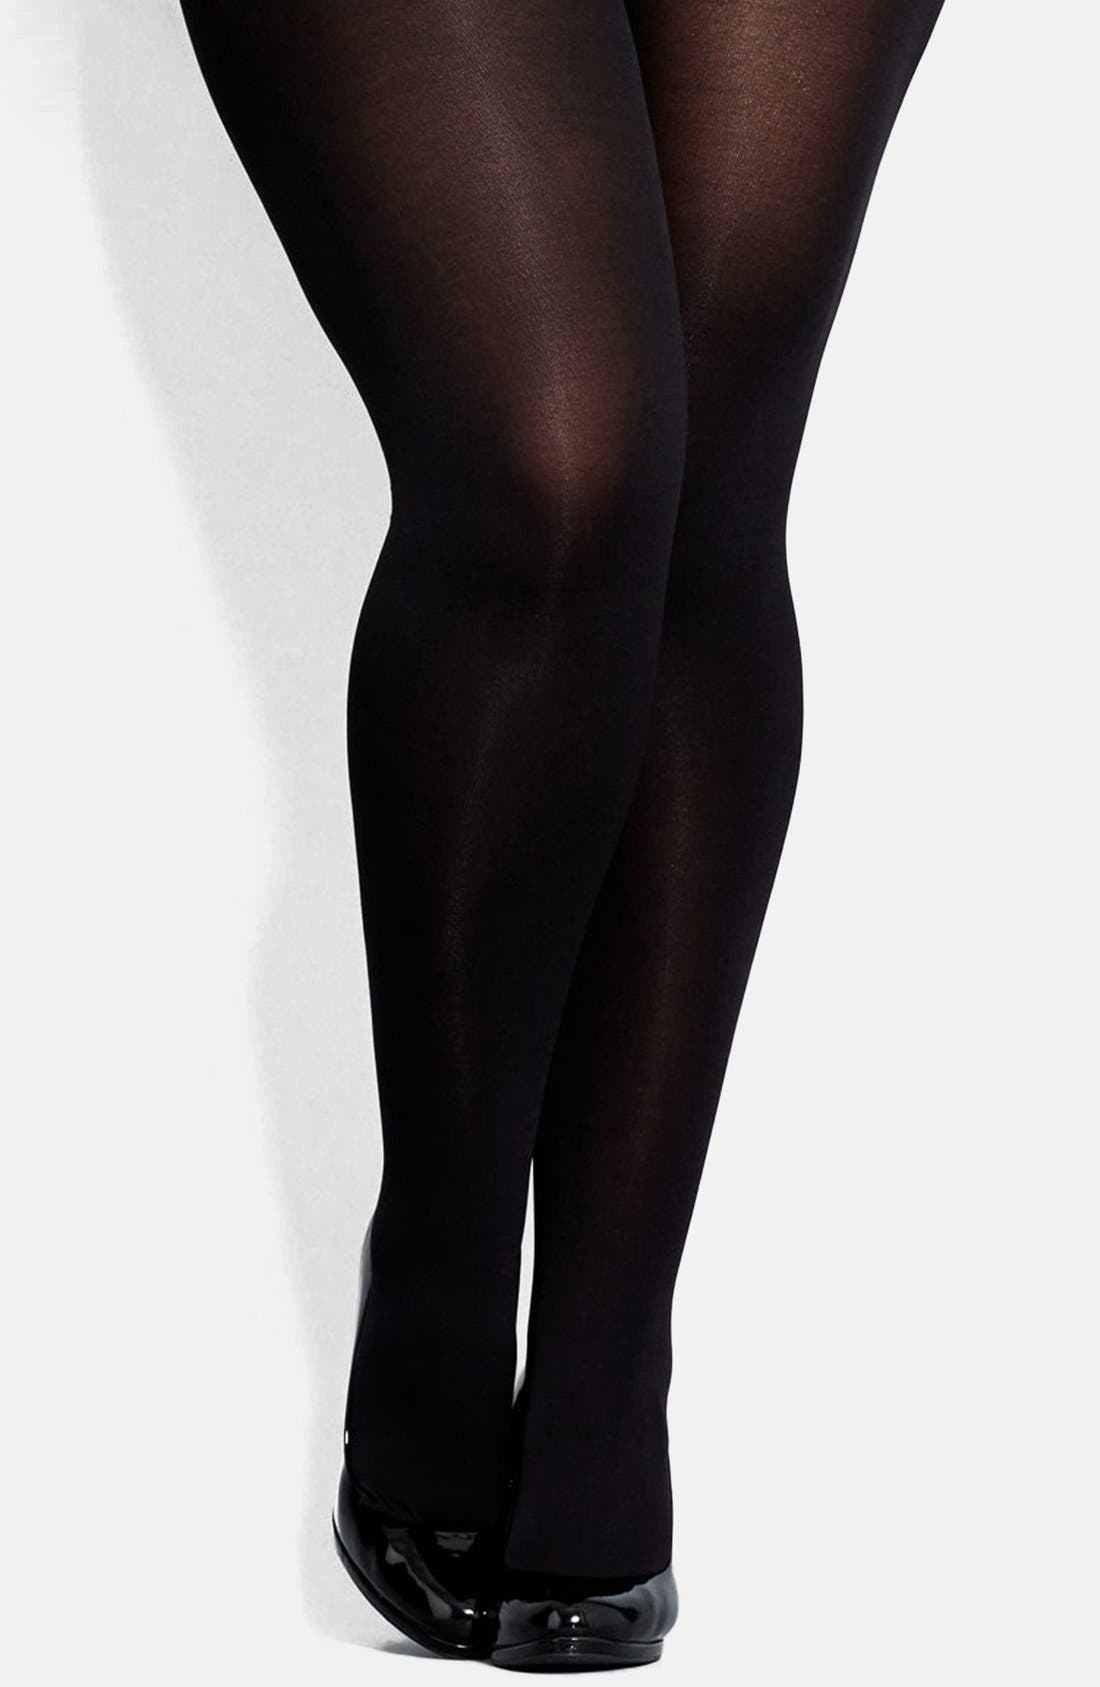 Alternate Image 1 Selected - City Chic 120 Denier Black Opaque Tights (Plus Size)